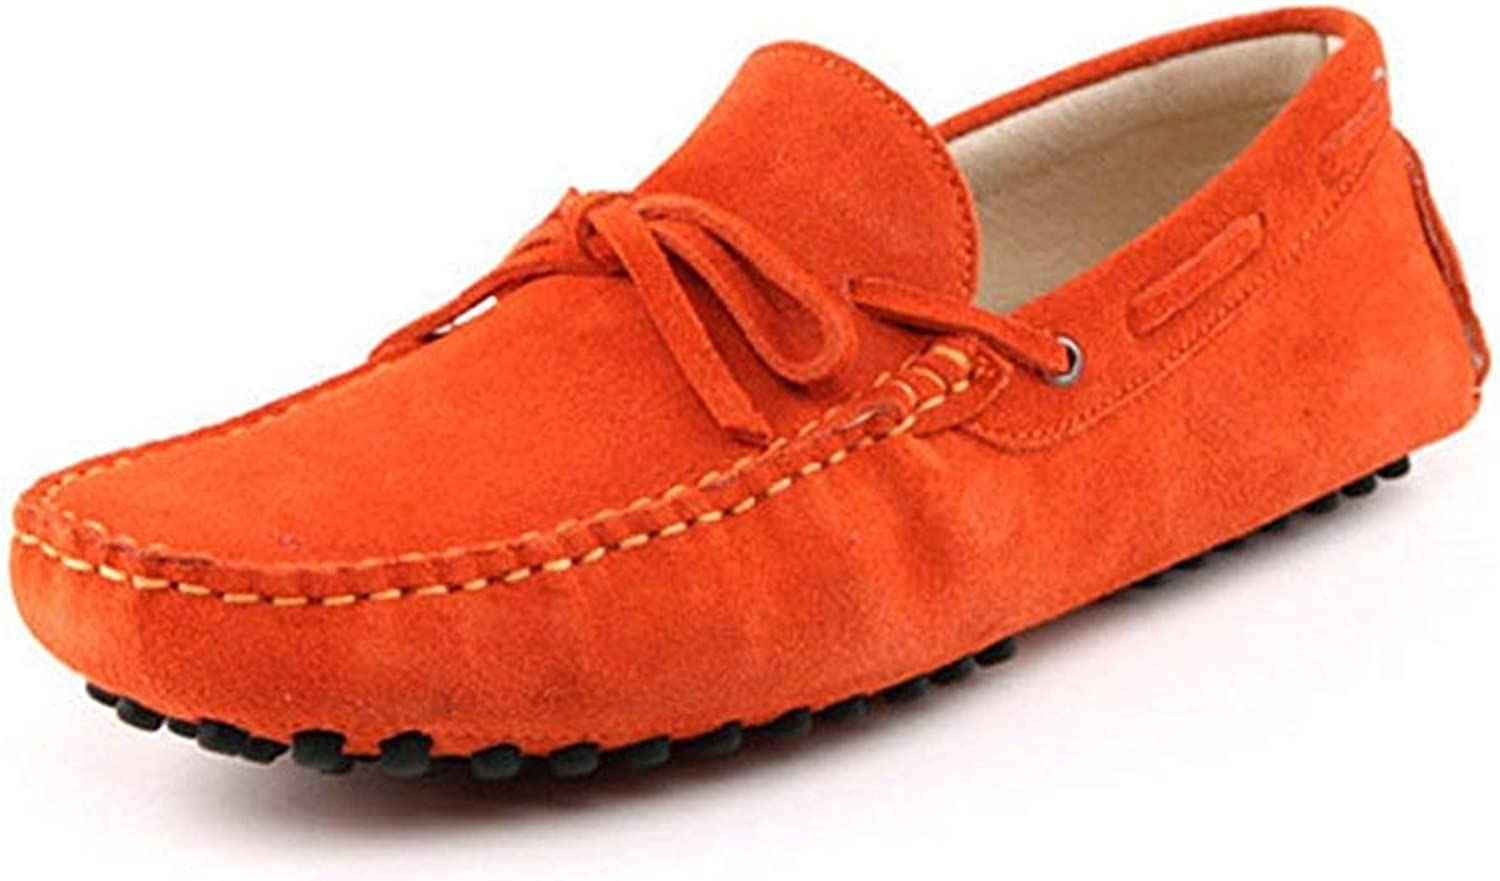 ZHRUI Men's New Knot orange Suede Driving Loafers Penny Boat shoes 11 M UK (color   -, Size   -)